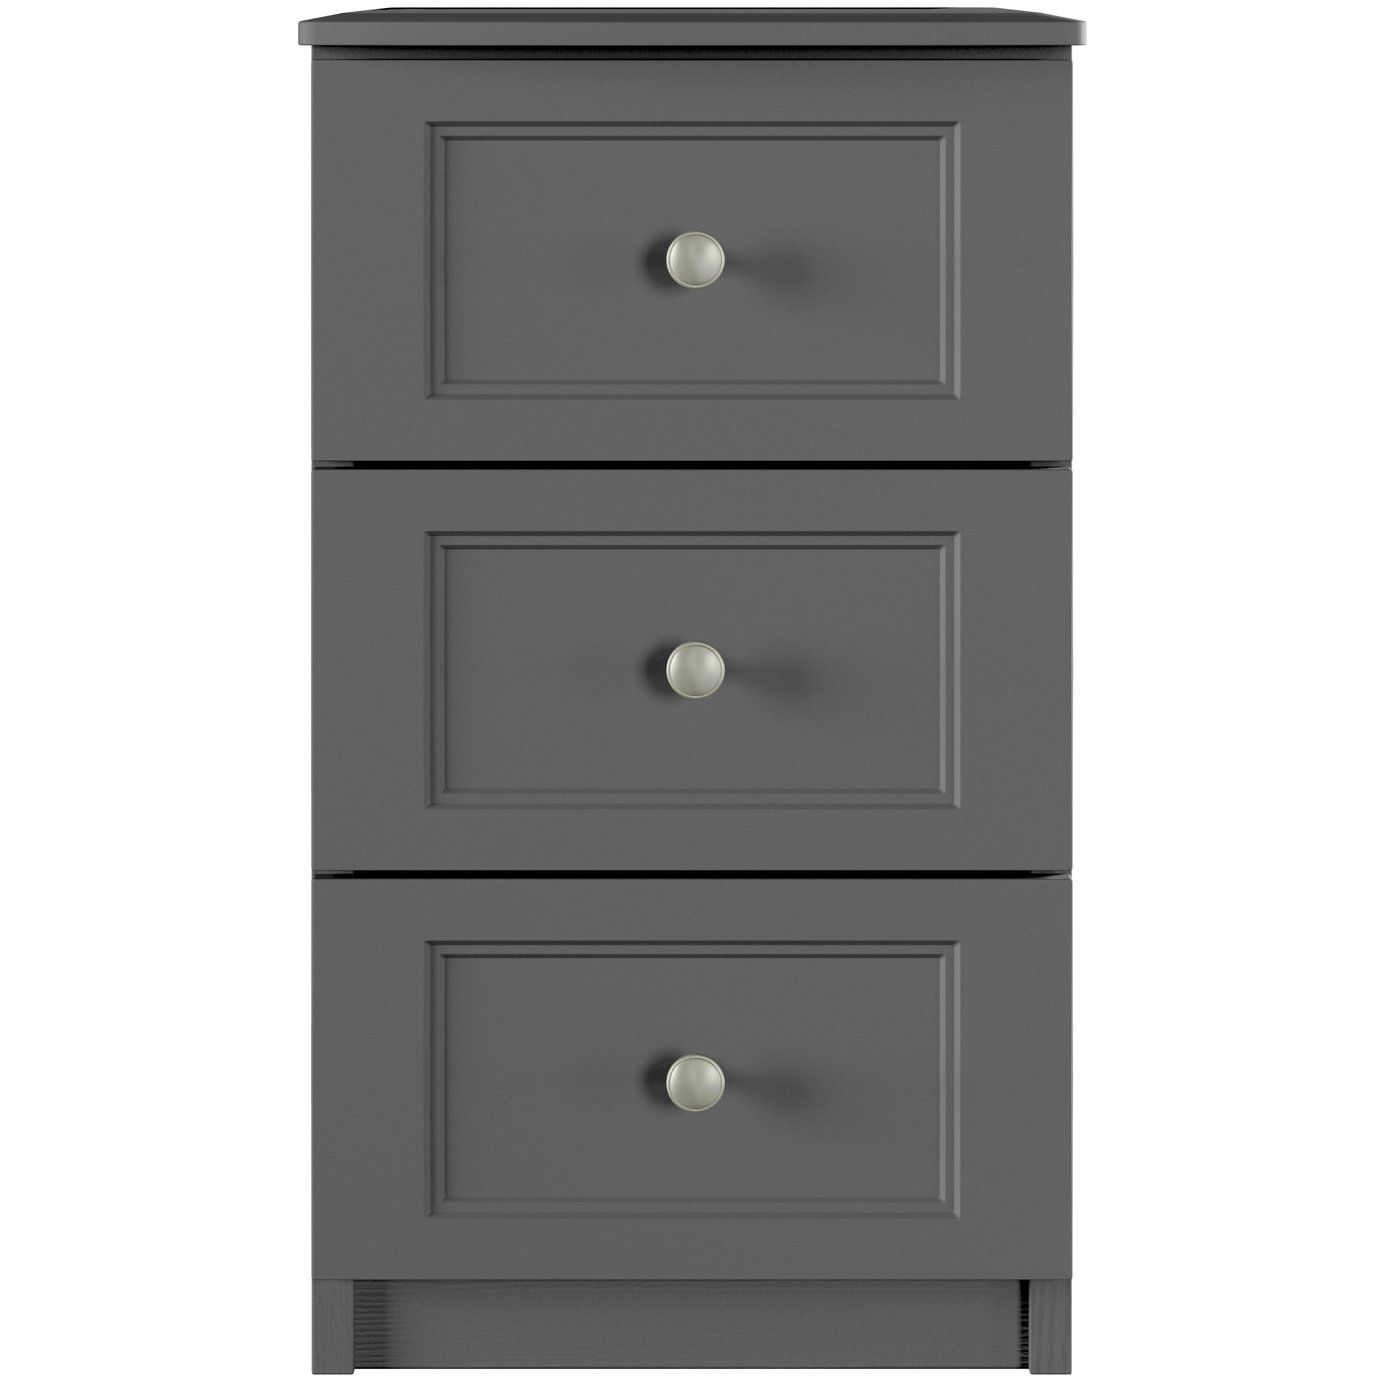 One Call Bexley 3 Drawer Bedside Table Dark Grey In 2020 3 Drawer Bedside Table Furniture Making Drawers